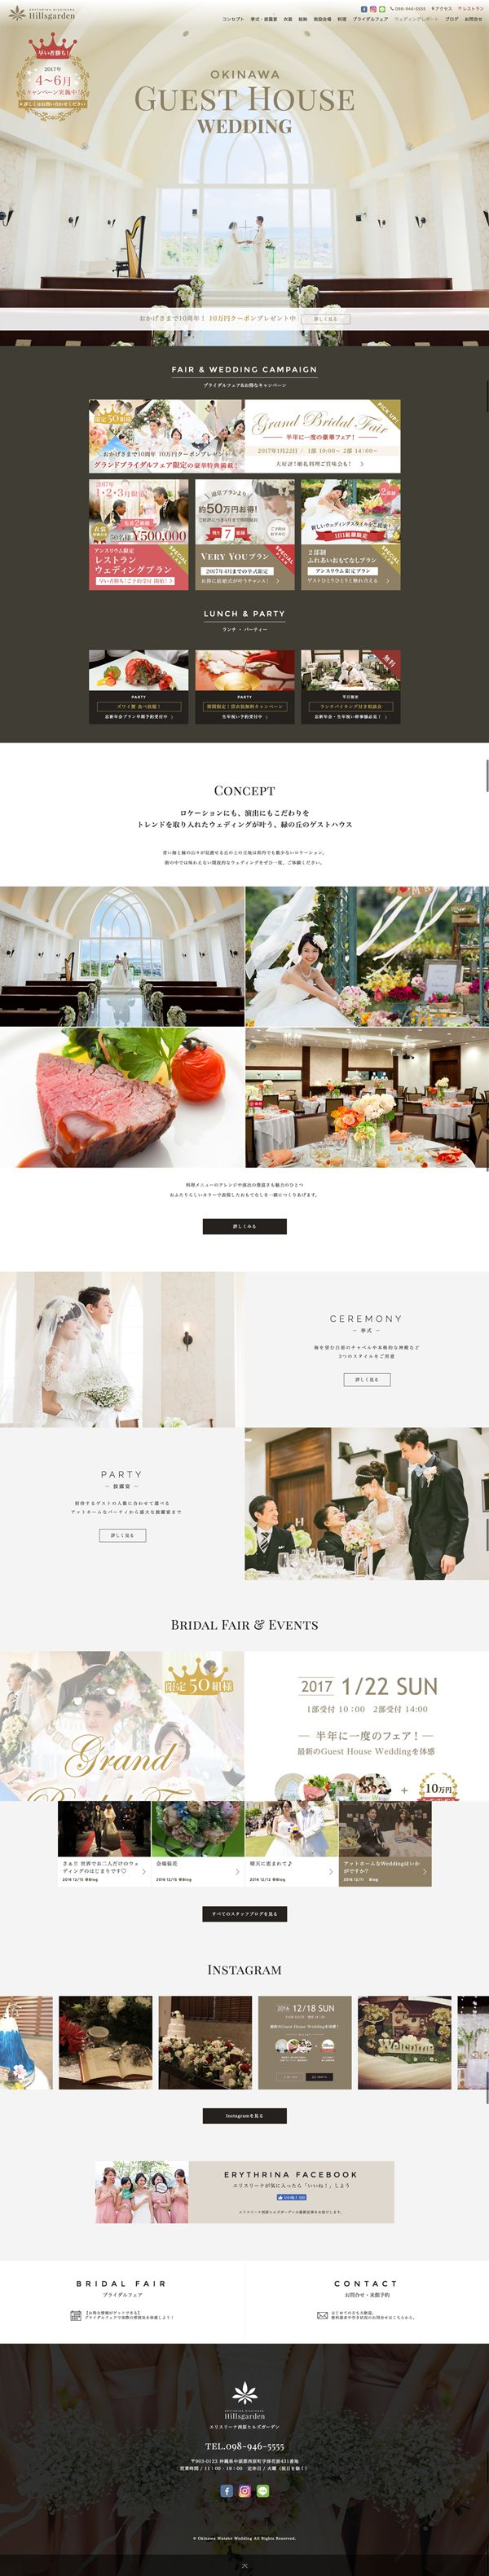 GUEST HOUSE  WEDDING